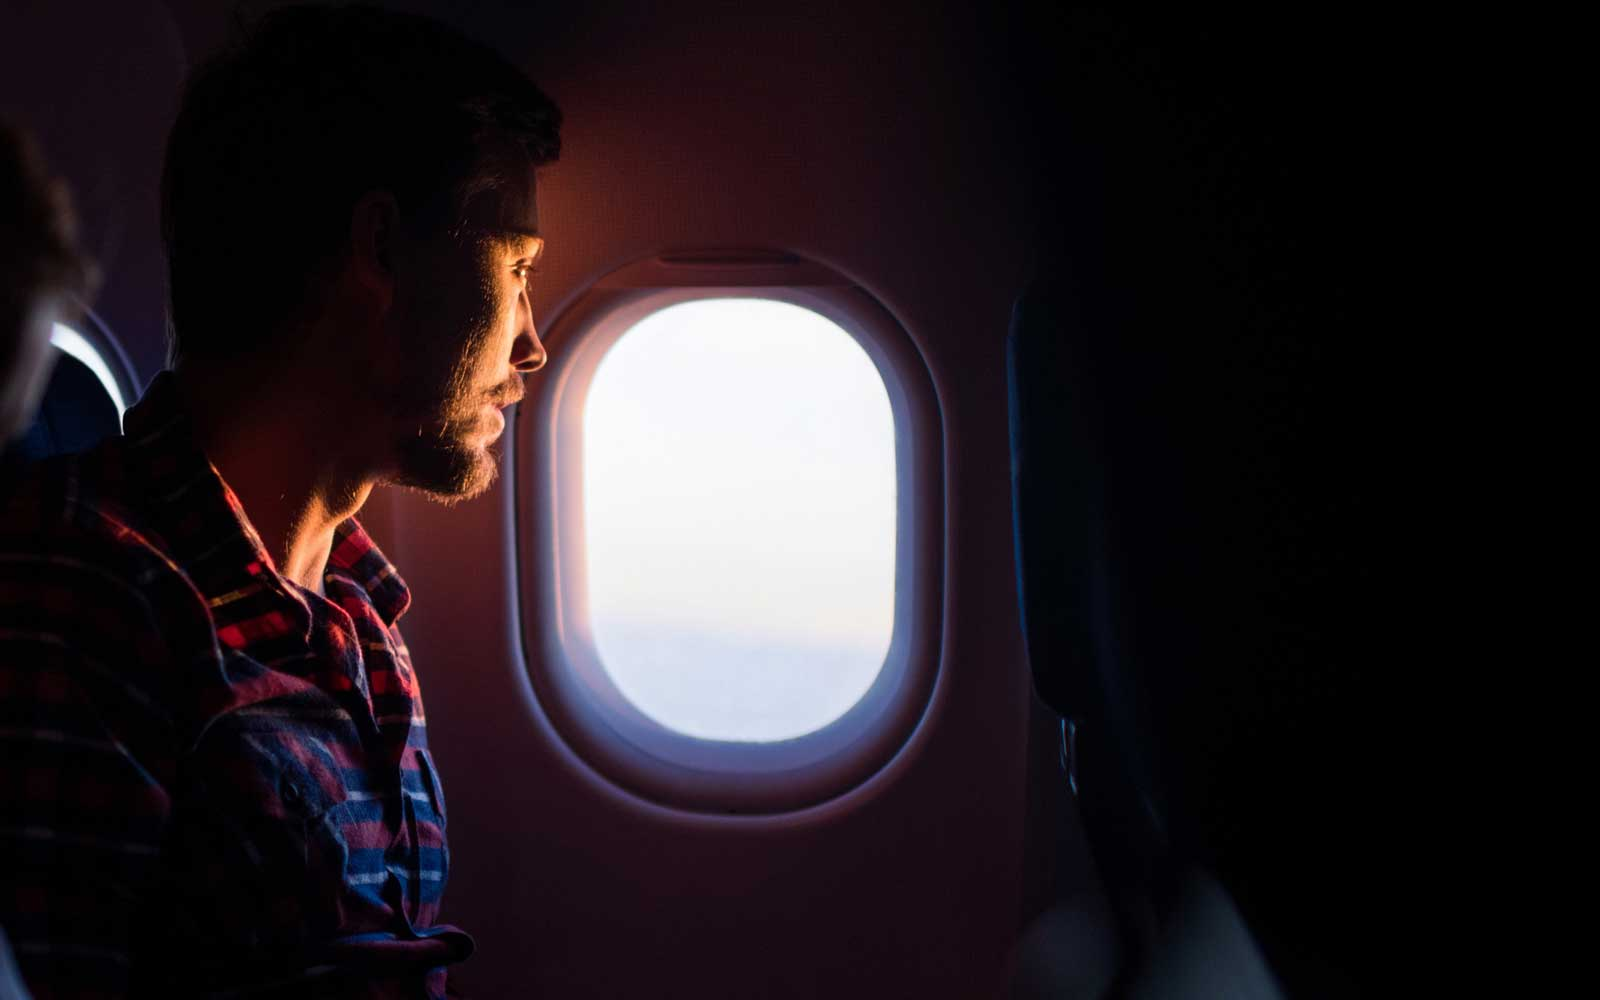 Young man sitting in an airplane and looking through window.